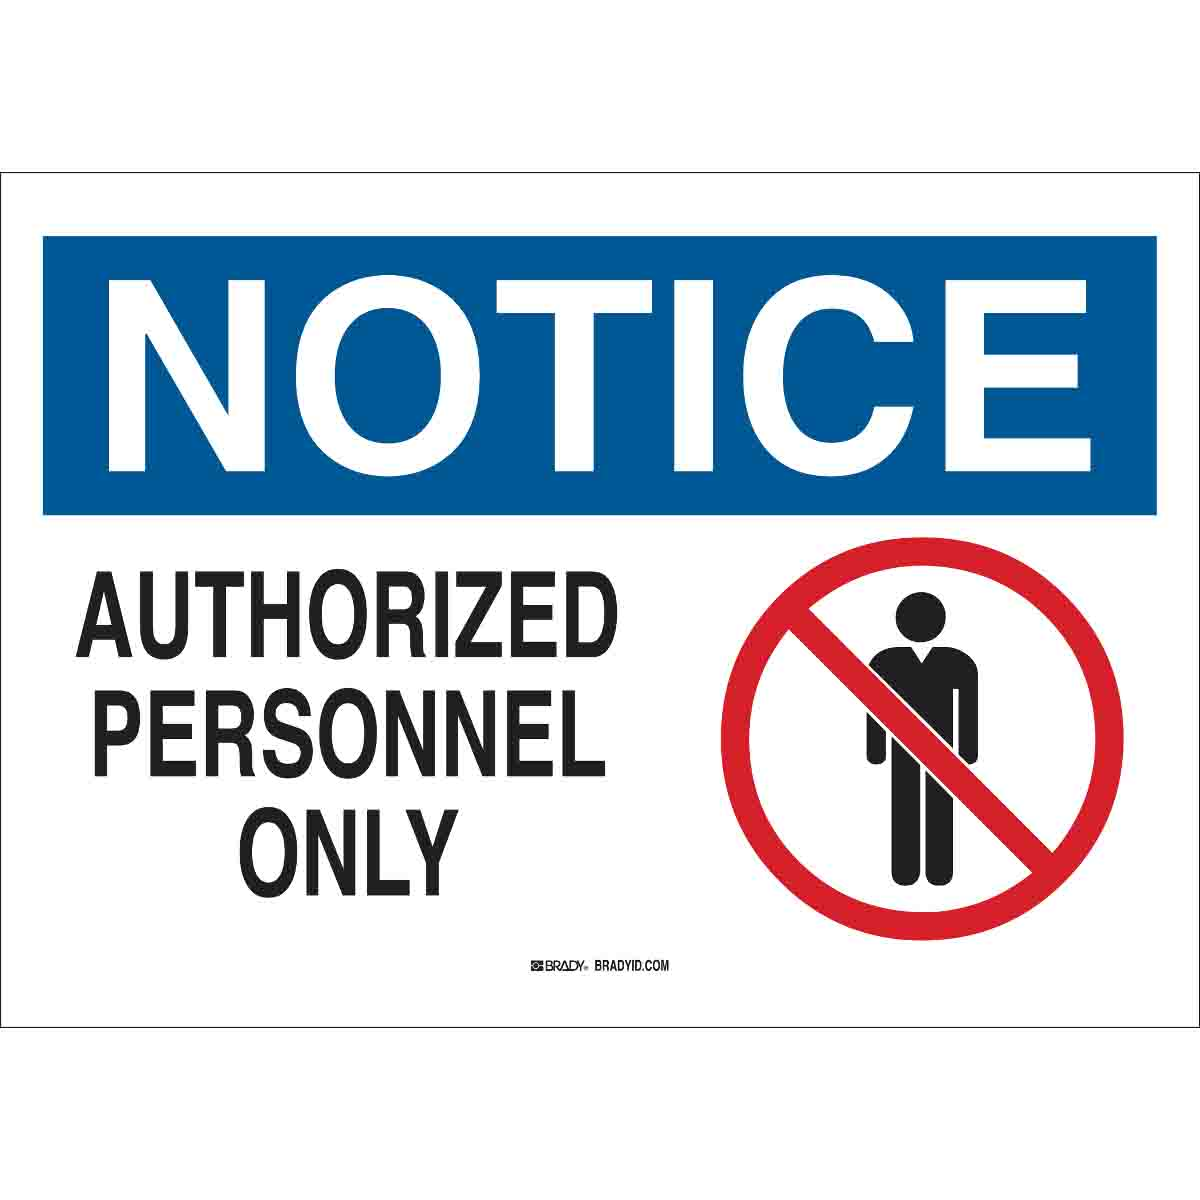 photograph about Authorized Personnel Only Sign Printable referred to as Consideration Accepted Workforce Simply Signal